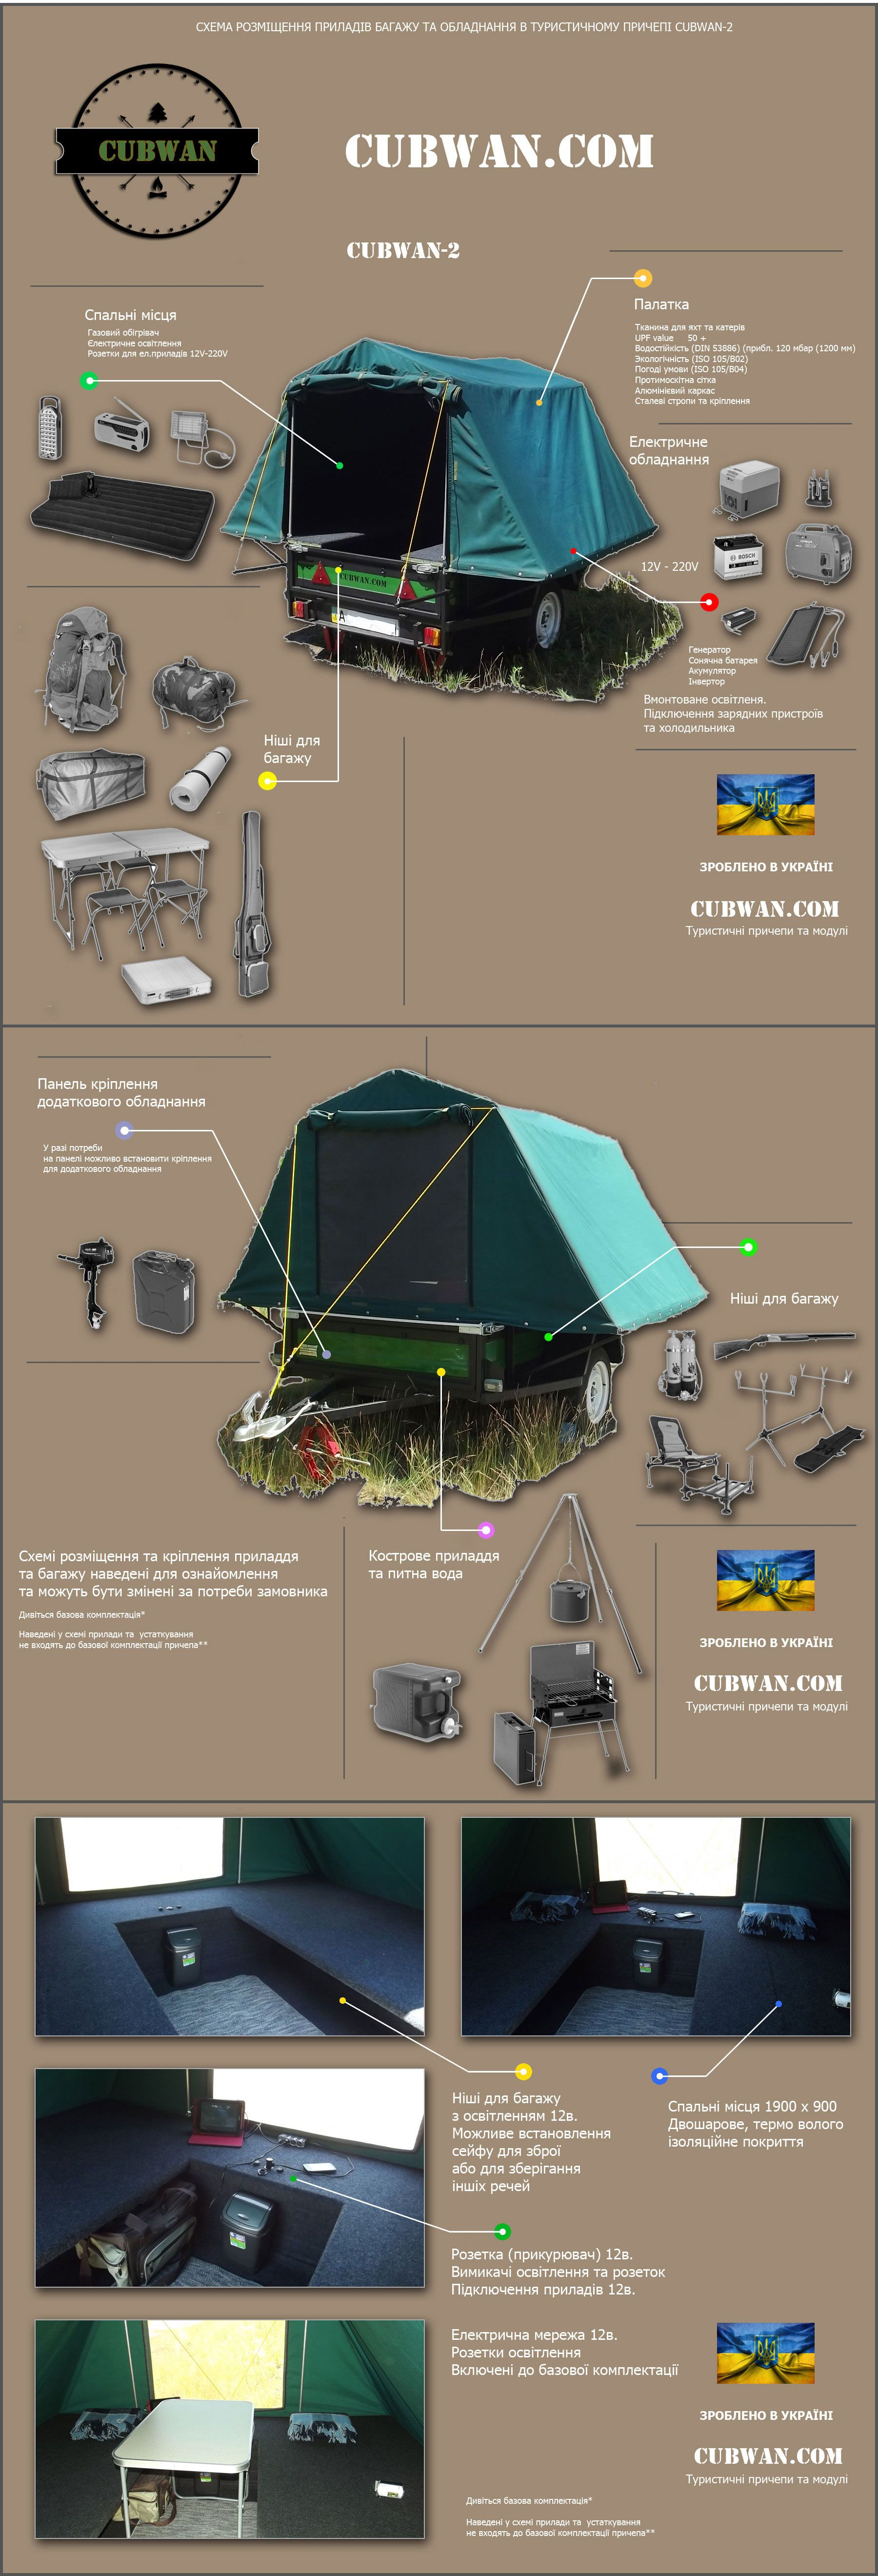 M101 Trailer Wiring Diagram Roof Tent Camping Cubwan 2 Http Camploverscom Coleman 6